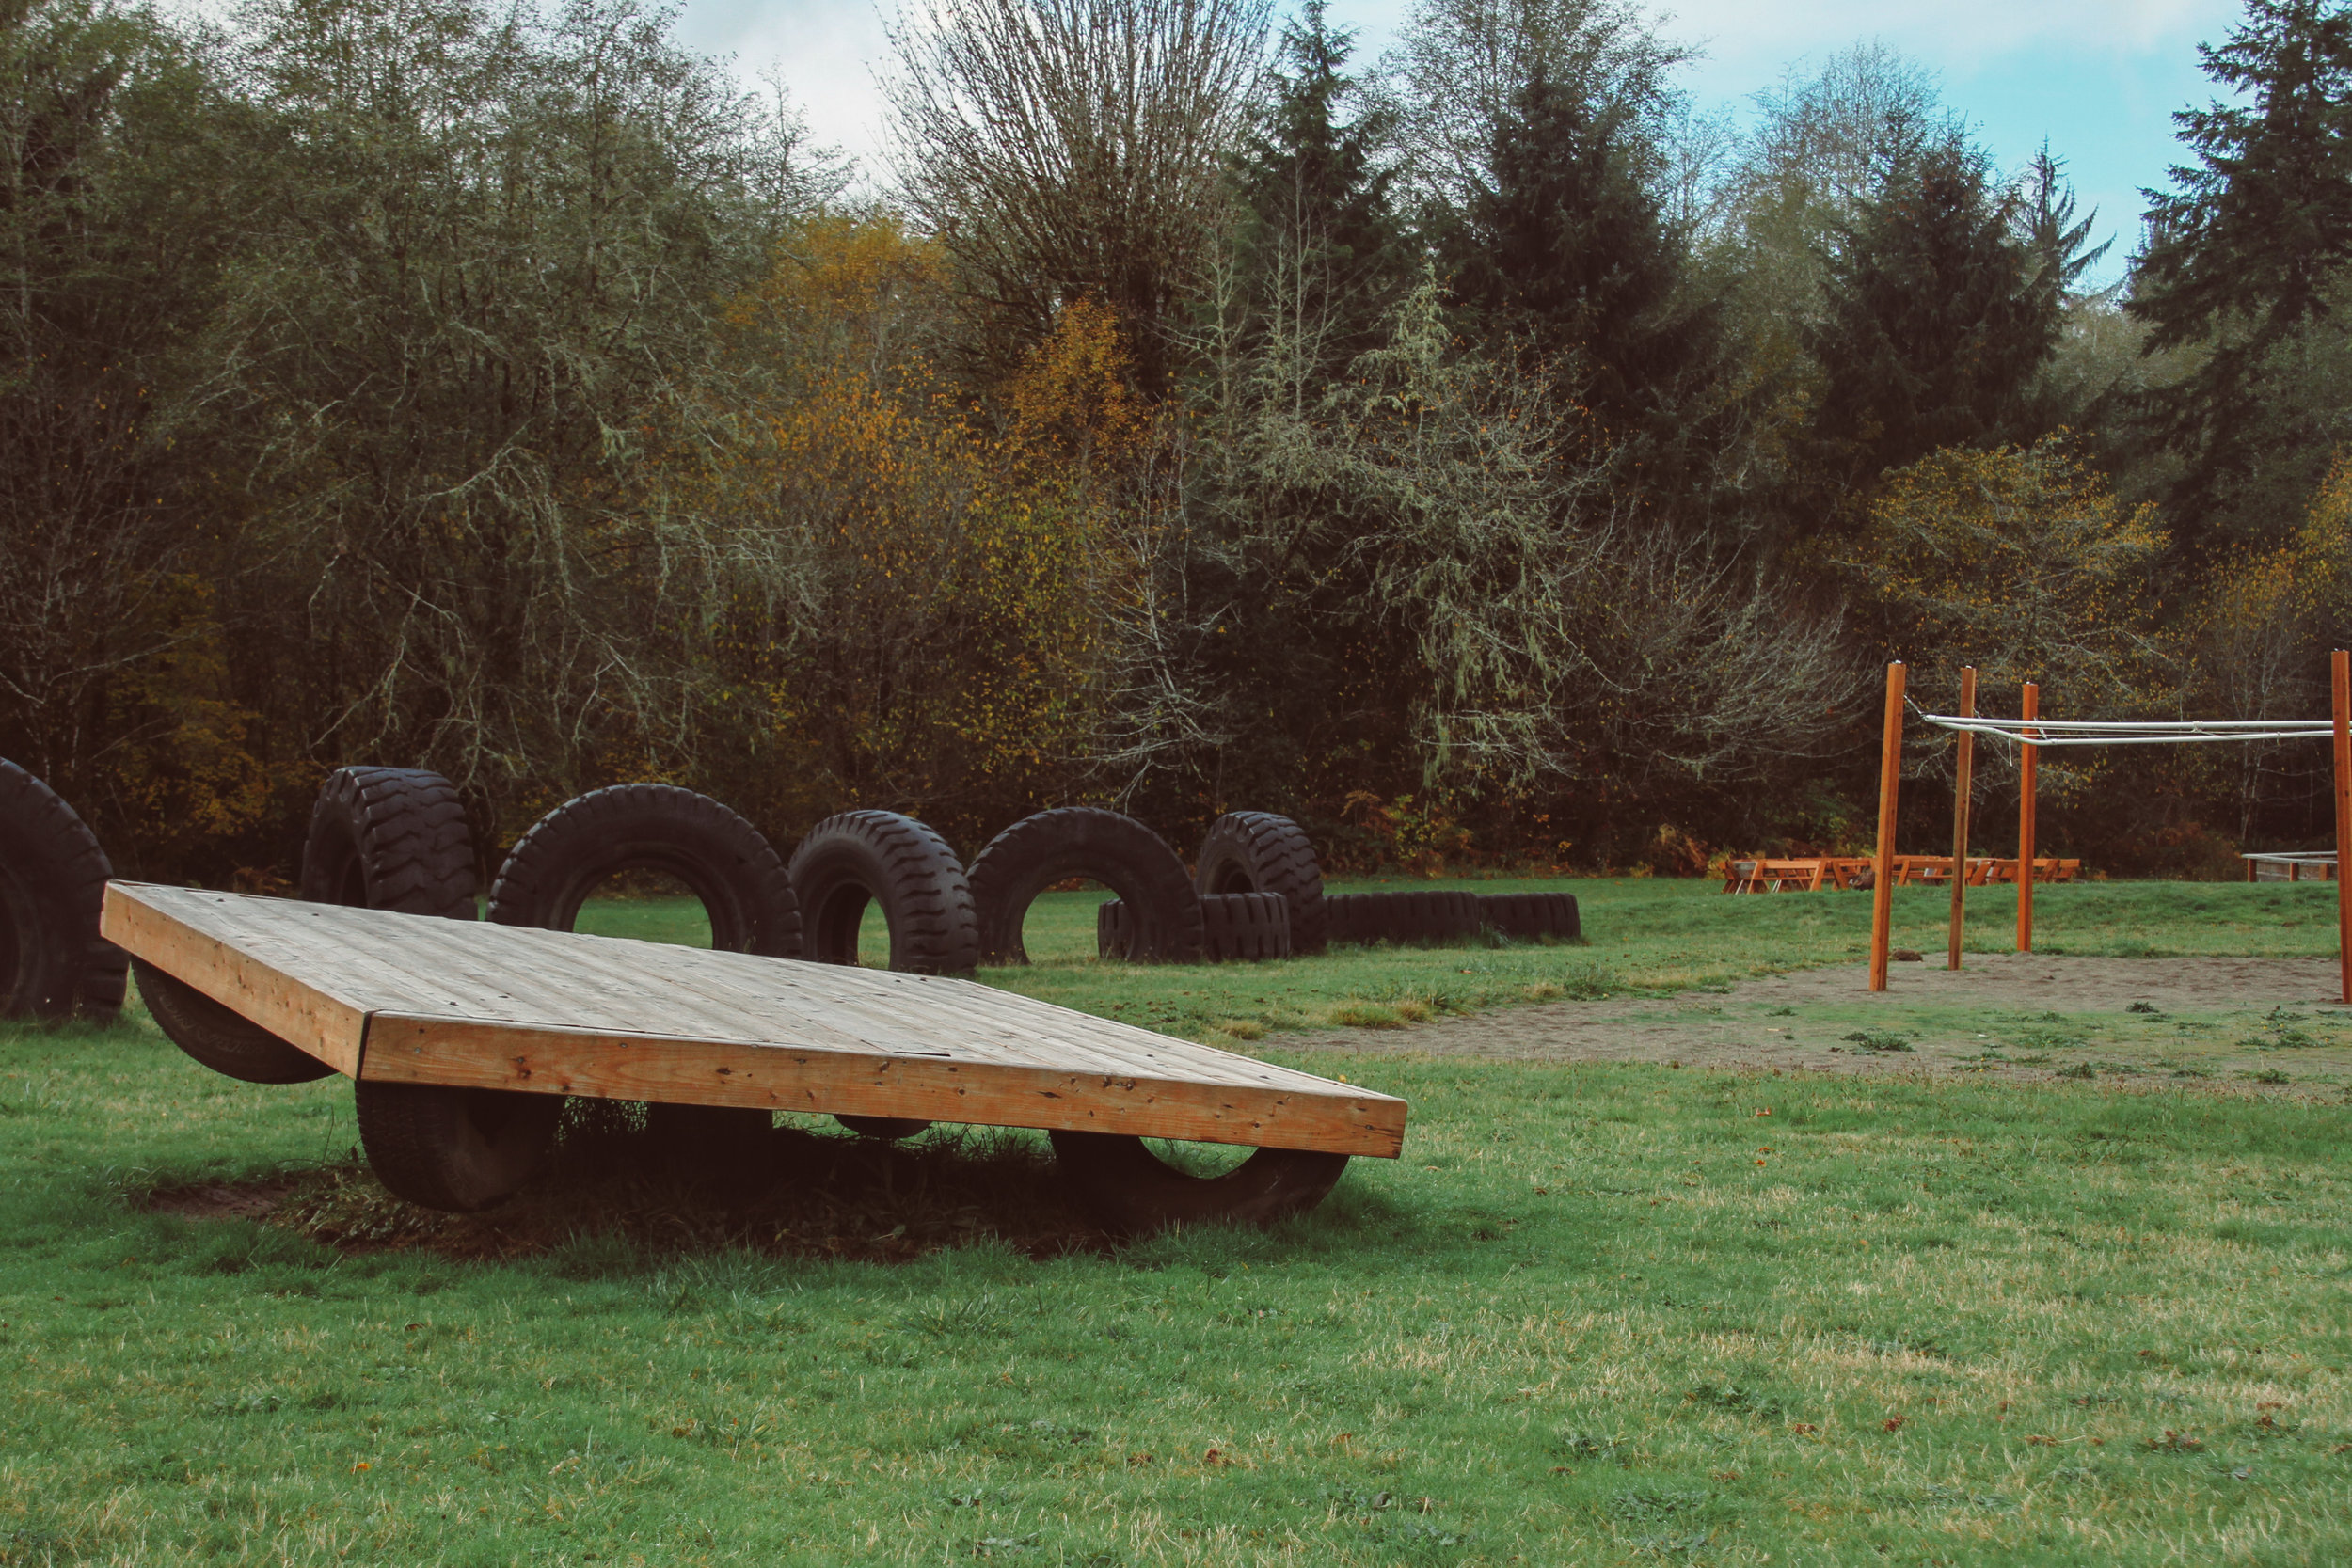 Our Play Area with an omni-totter, 9 square-in-the-air, a swing set, gaga ball and tires to play on